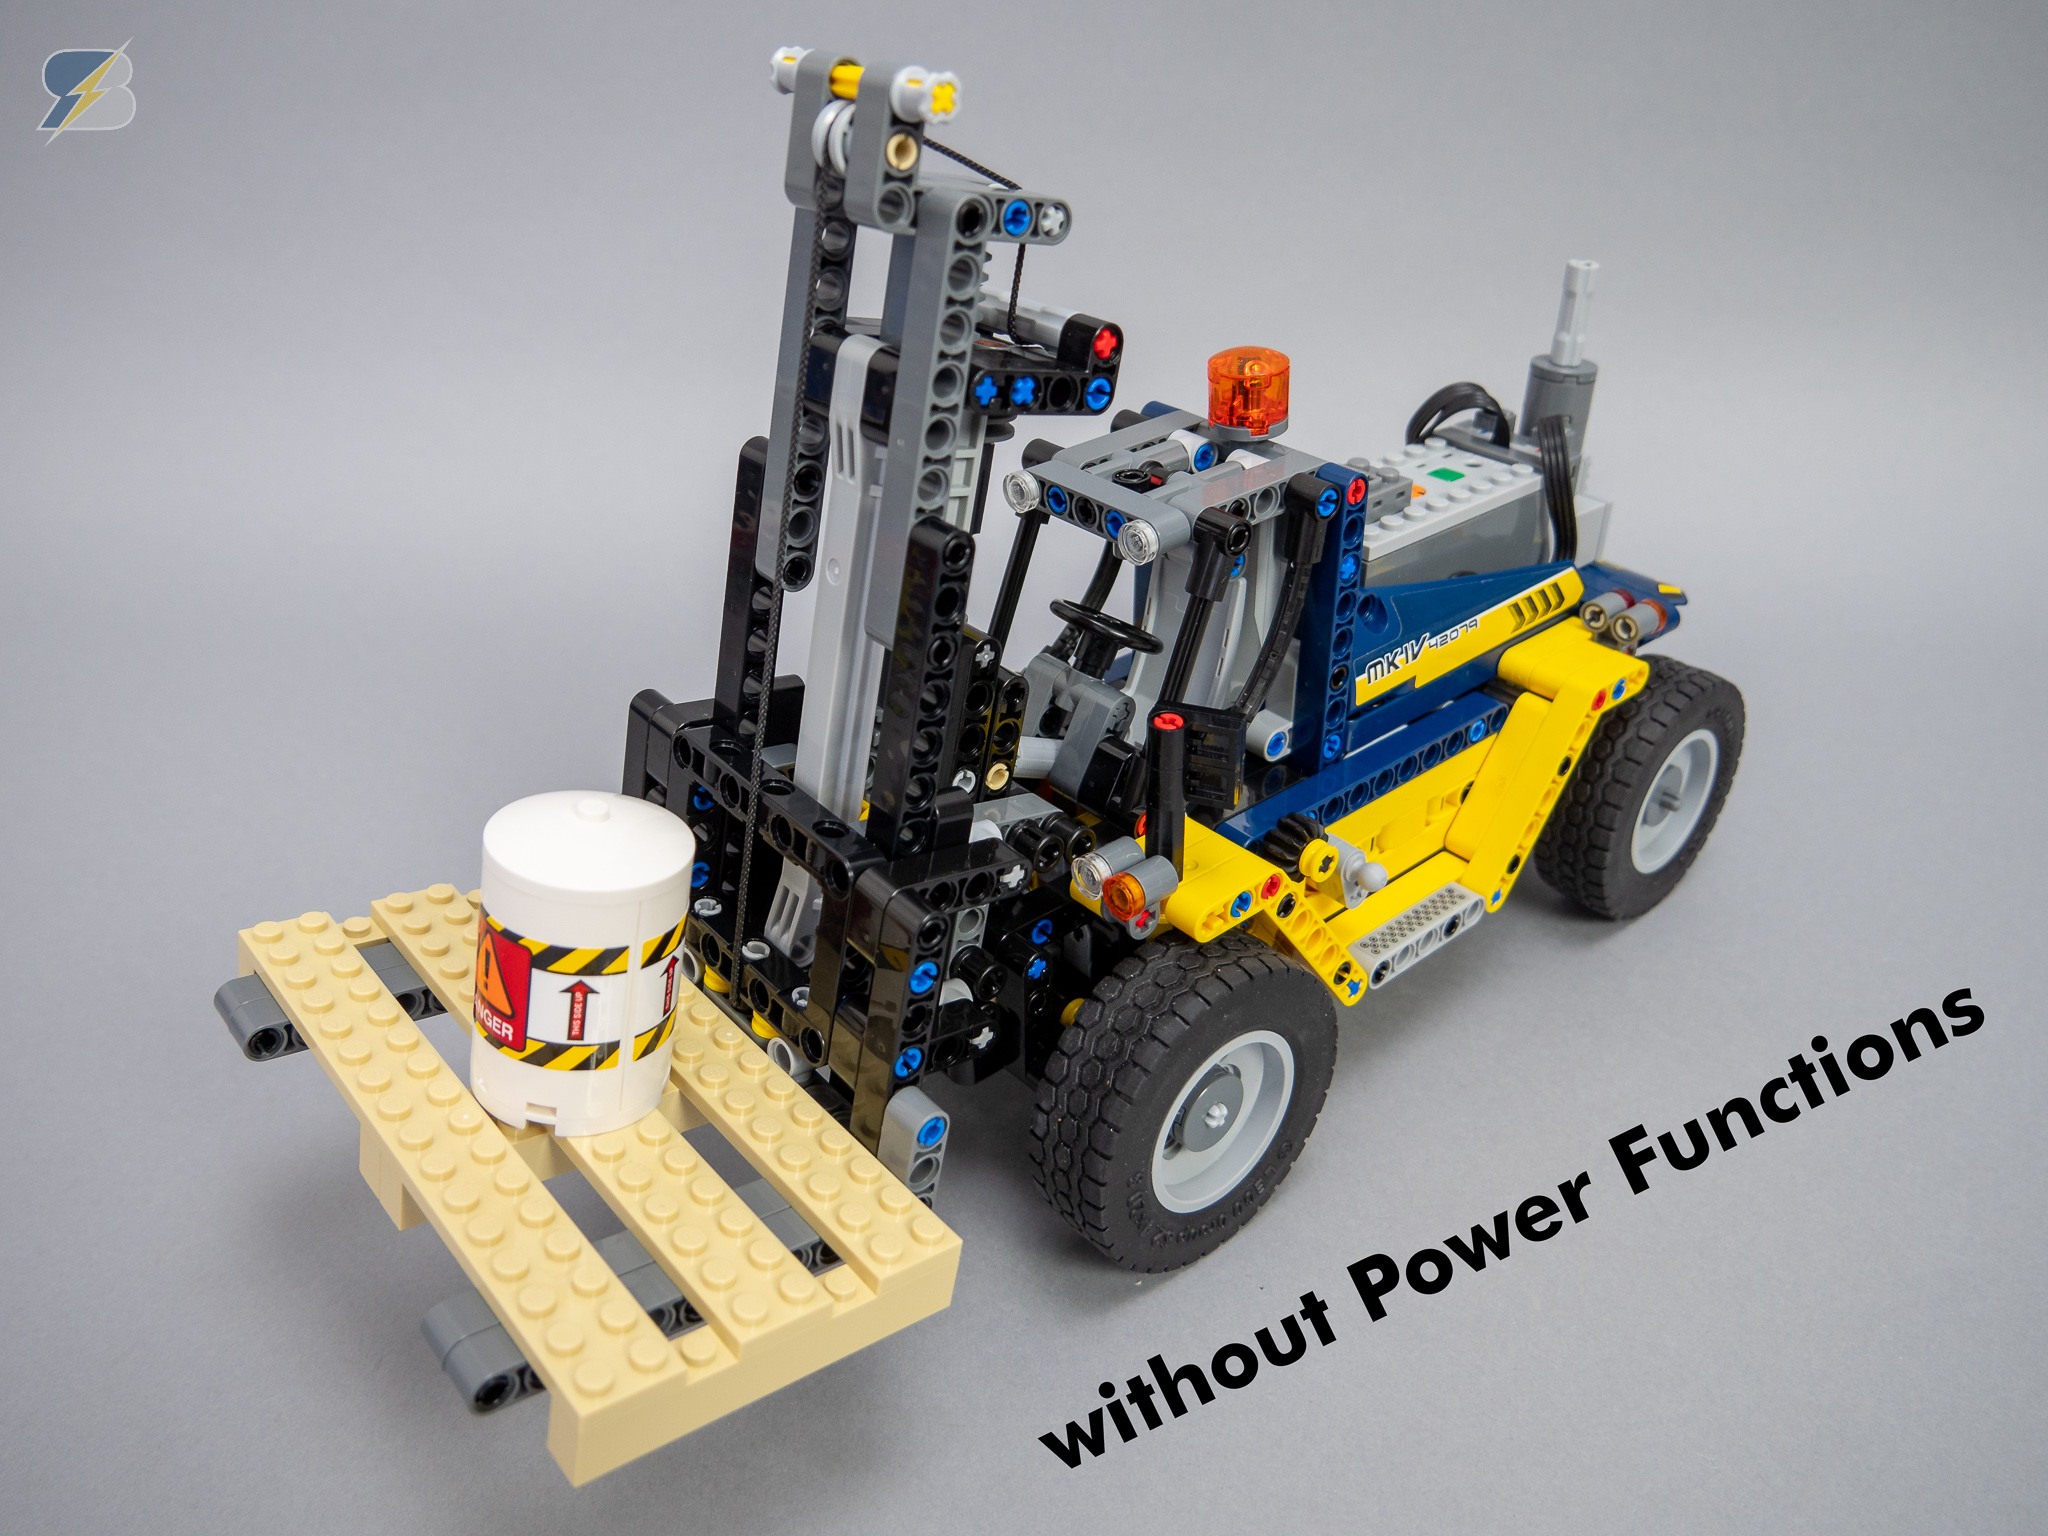 Technic 42079 Heavy Duty Forklift RC upgrade pack without Power Functions |  MOCHUB